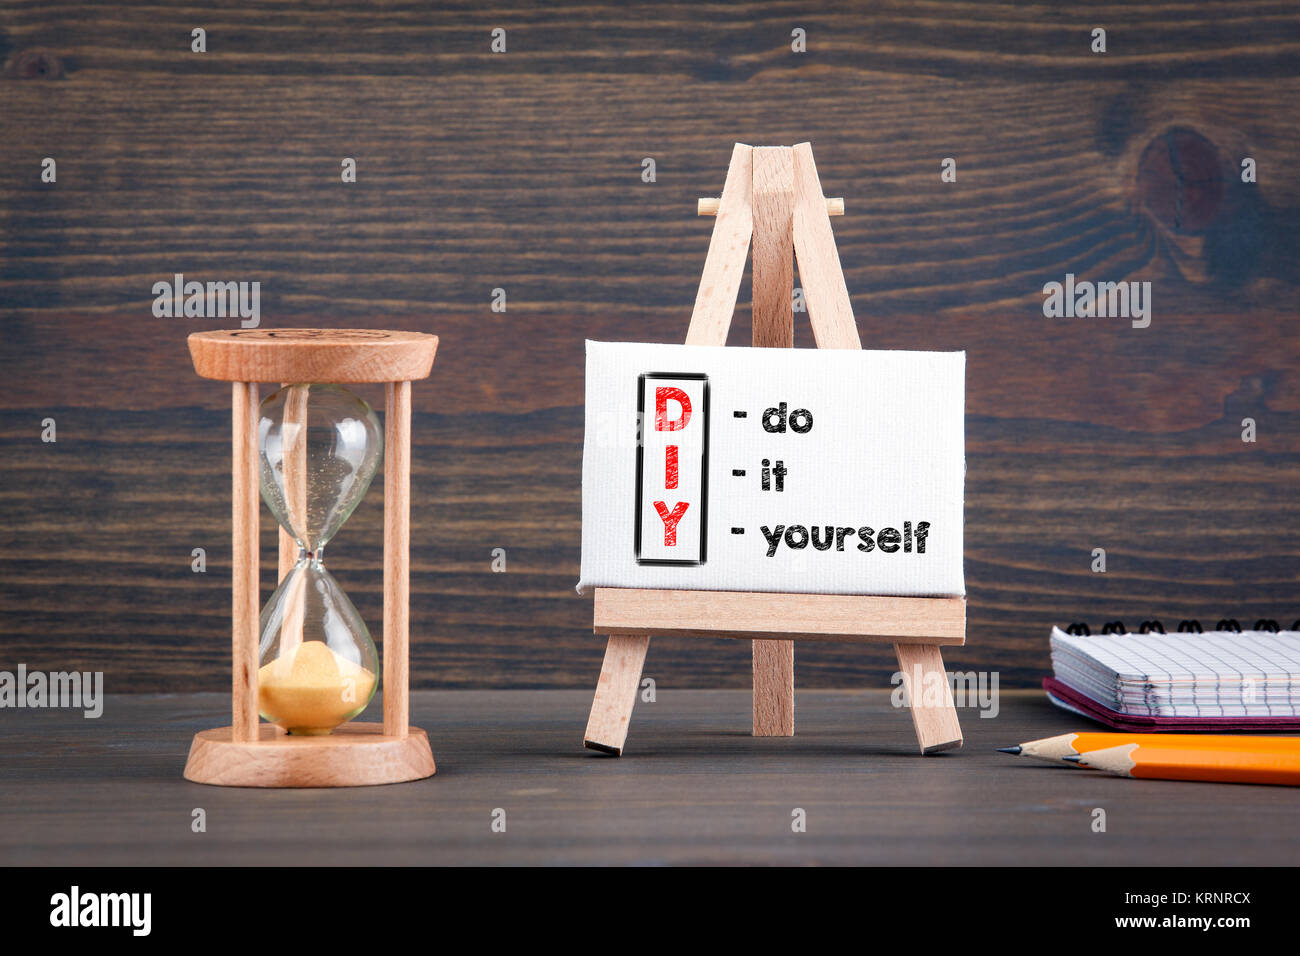 DIY do it yourself. Sandglass, hourglass or egg timer on wooden table - Stock Image